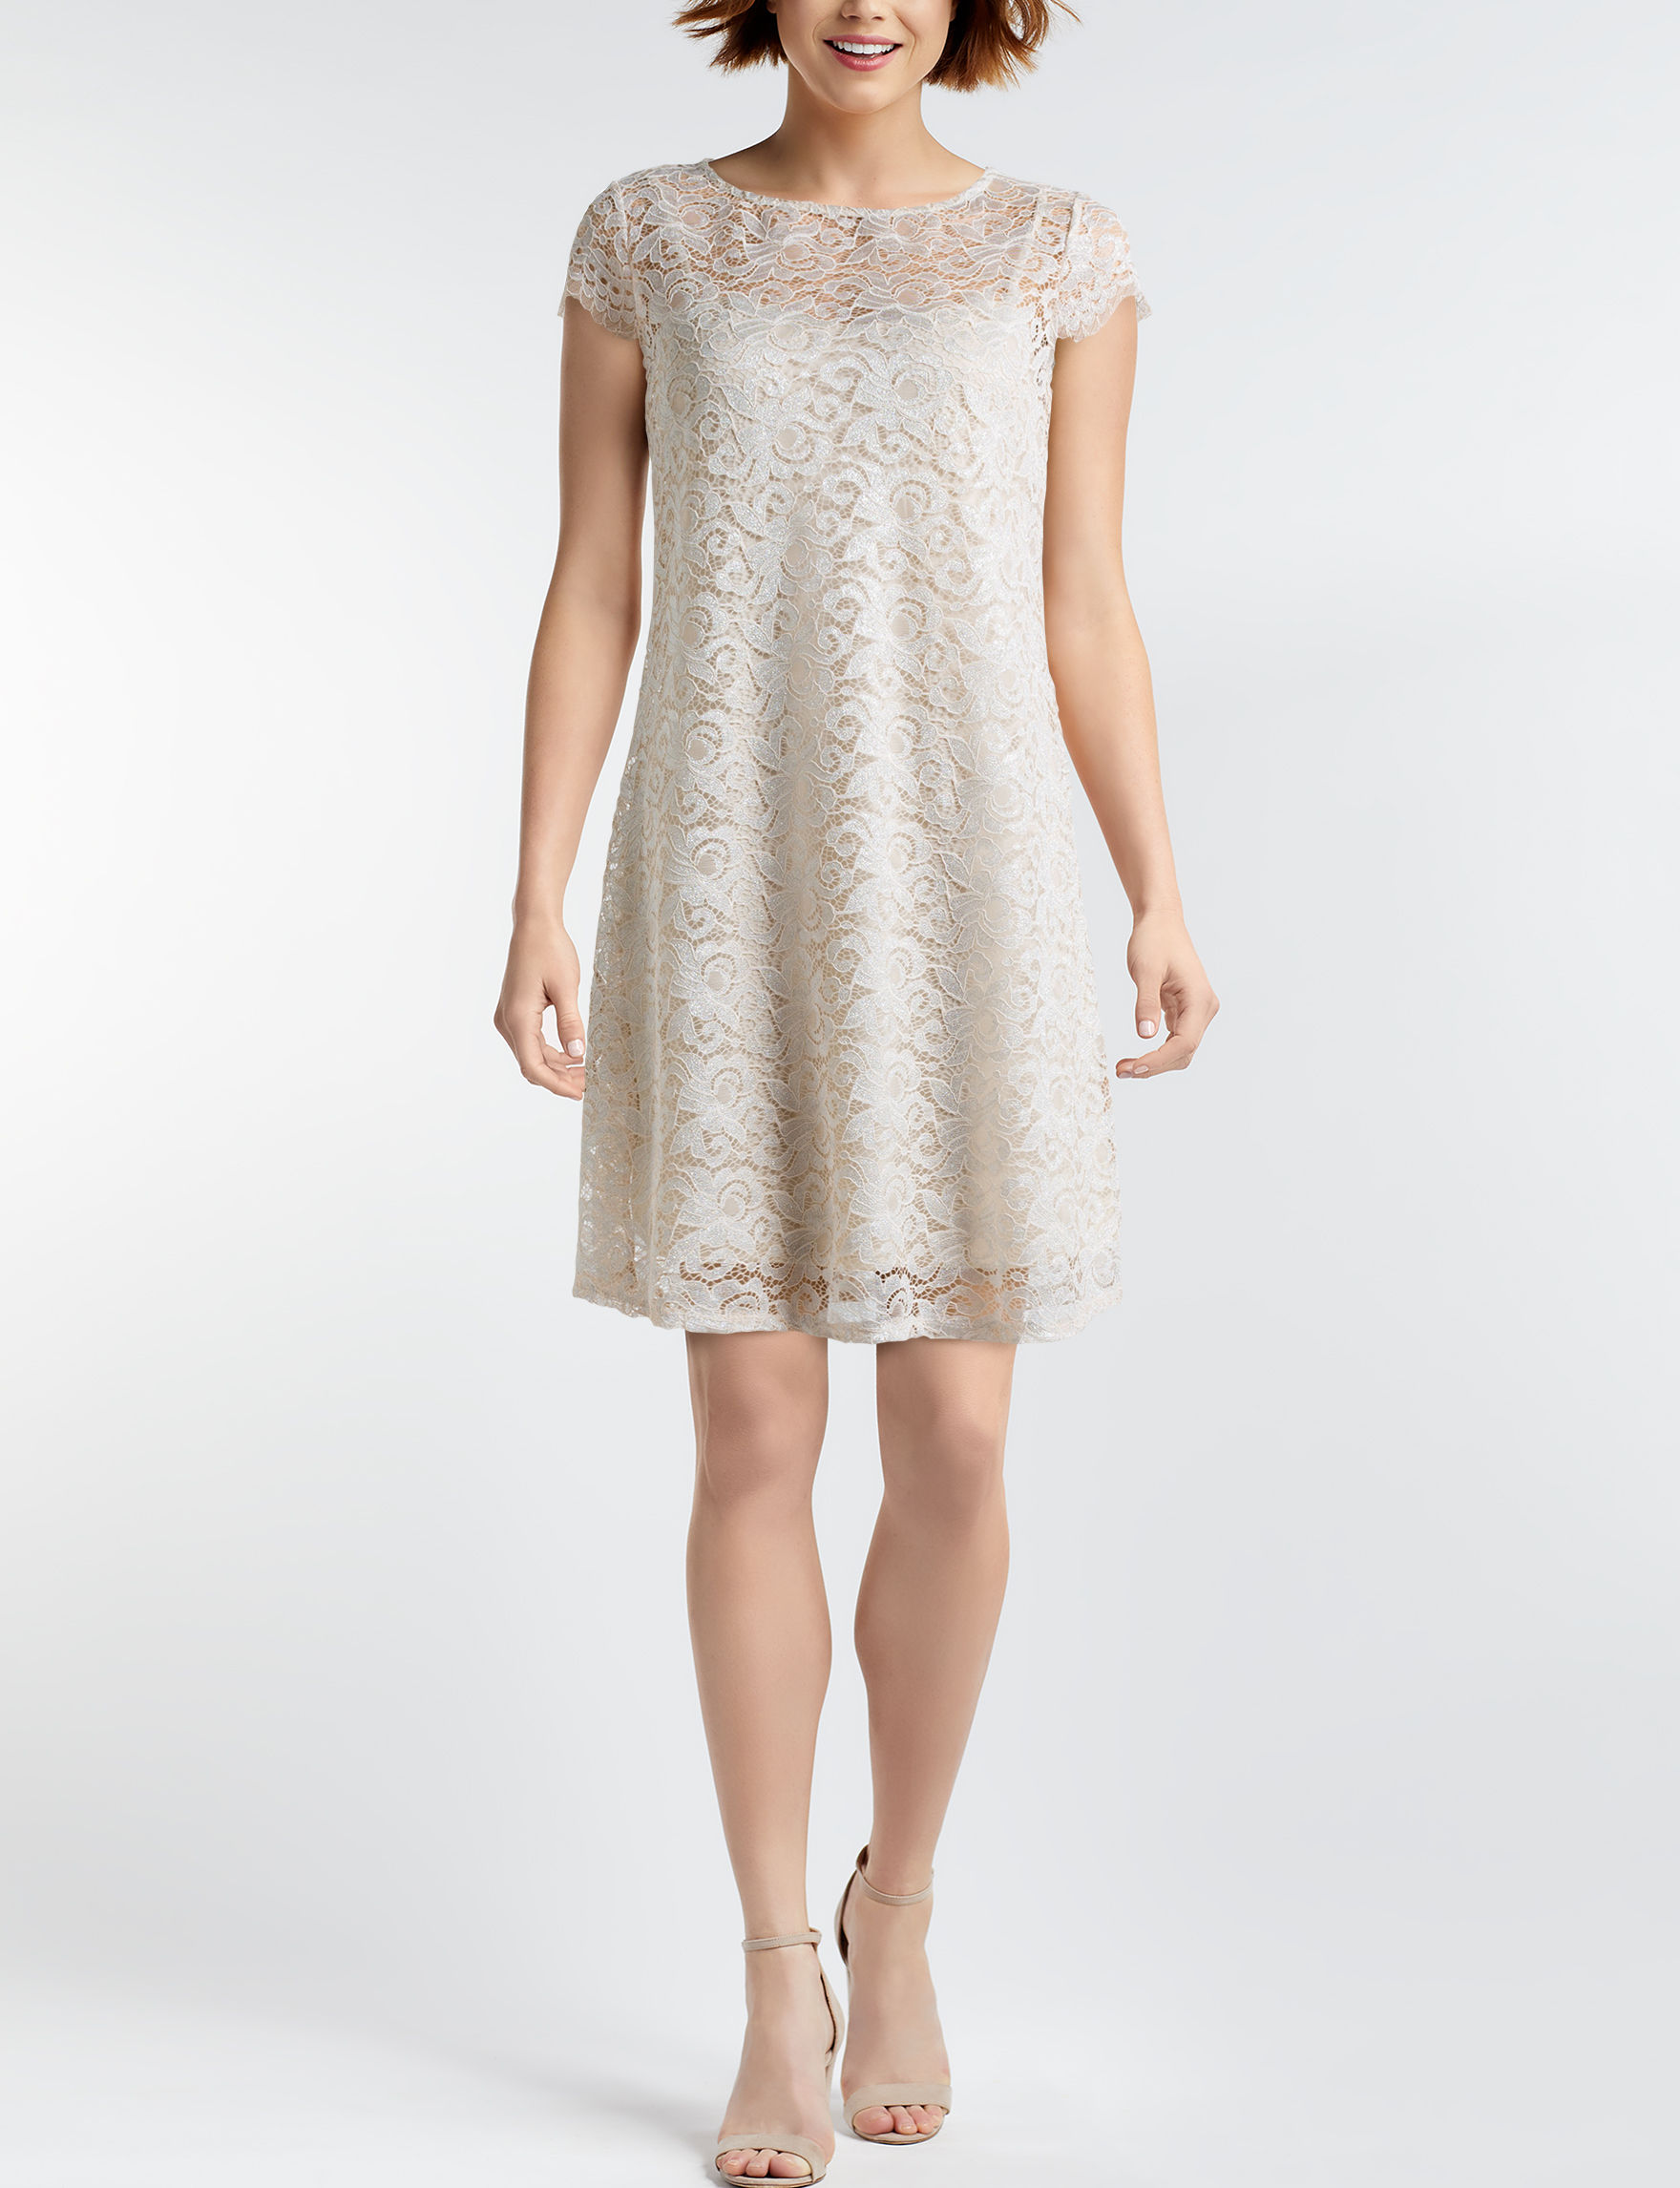 Marina Taupe Cocktail & Party Evening & Formal A-line Dresses Fit & Flare Dresses